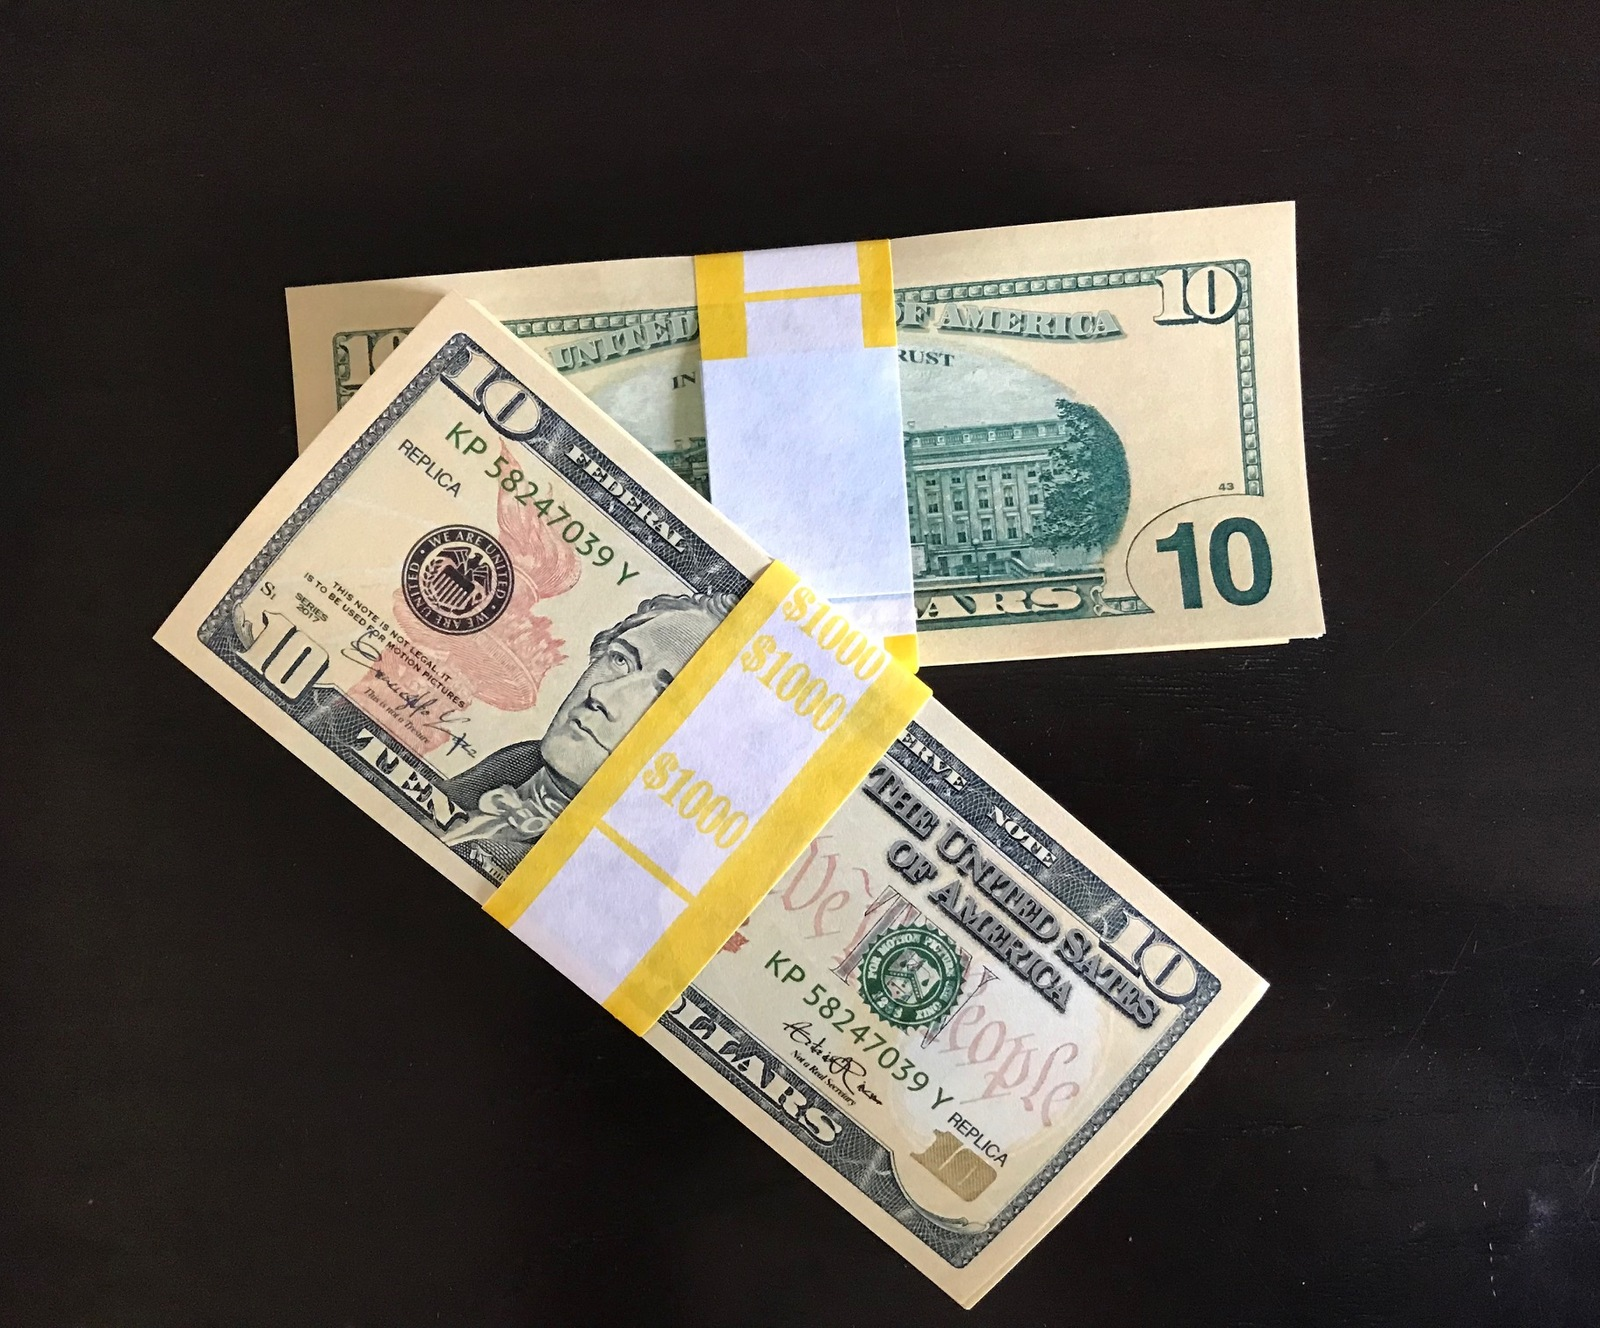 1.000 PROP MONEY REPLICA 10s All Full Print For Movie Video Films etc. image 2